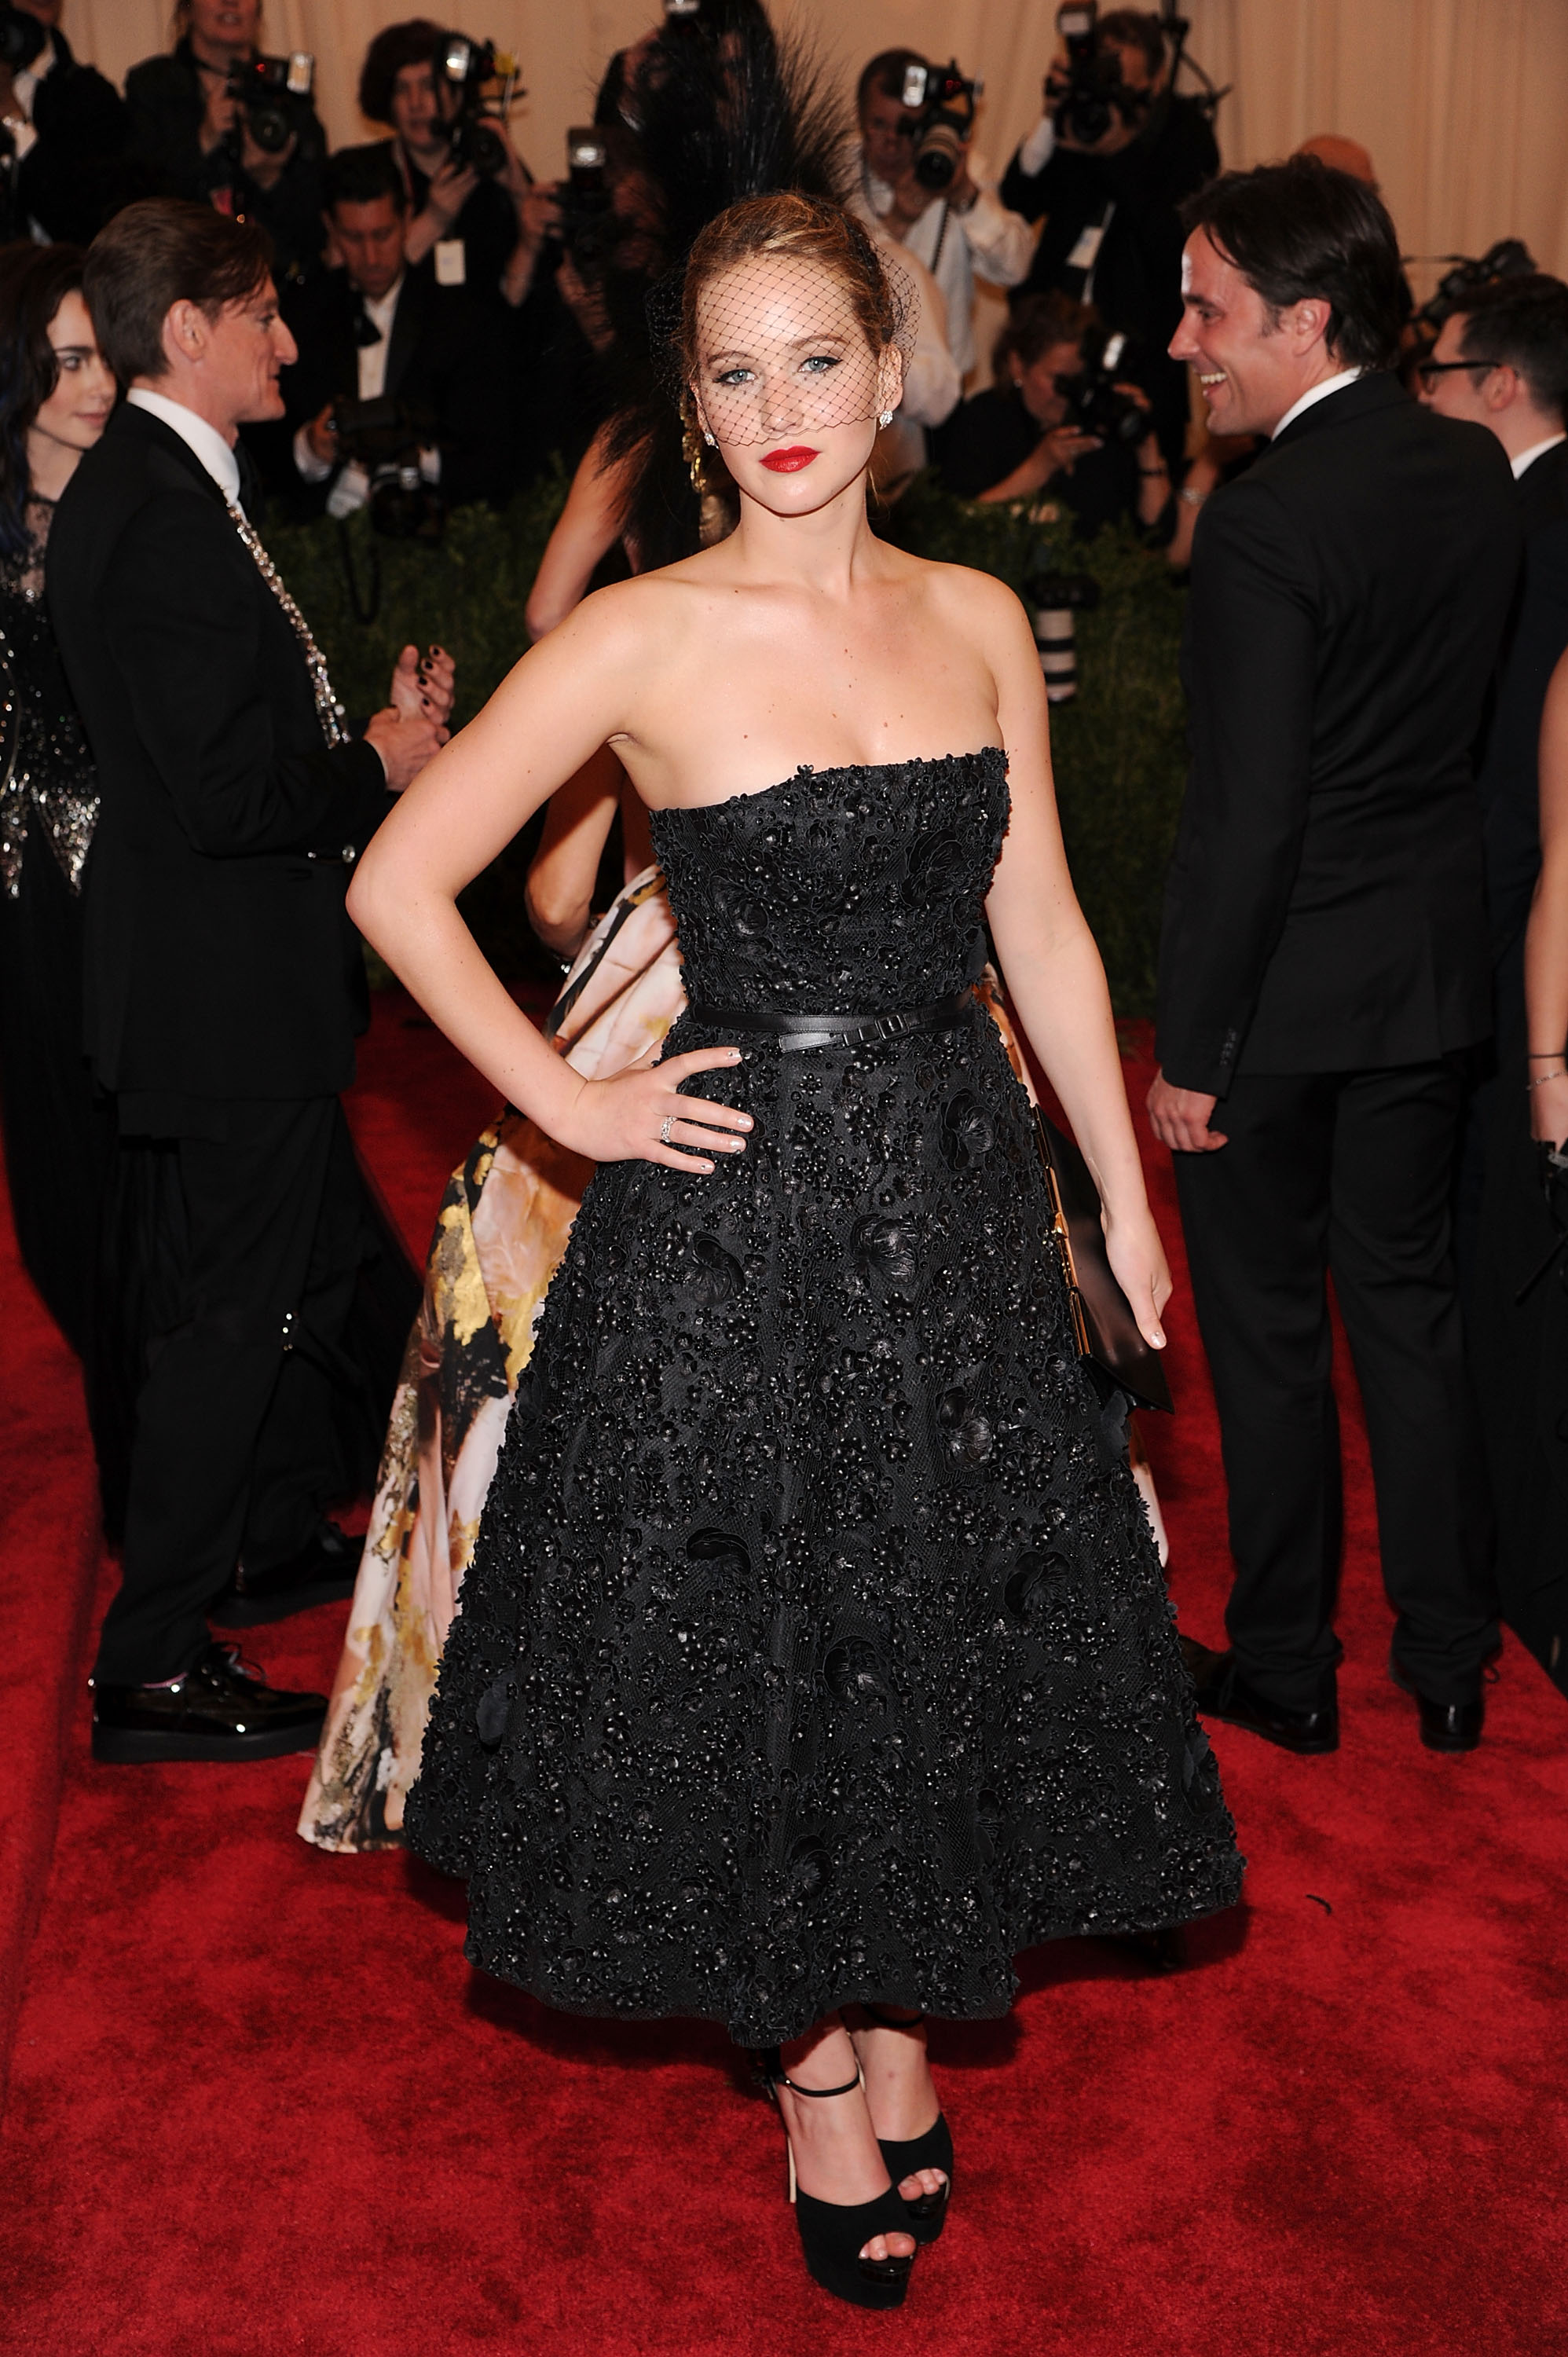 Jennifer Lawrence attends the Costume Institute Gala for the <i>PUNK: Chaos to Couture</i> exhibition at the Metropolitan Museum of Art on May 6, 2013 in New York City.